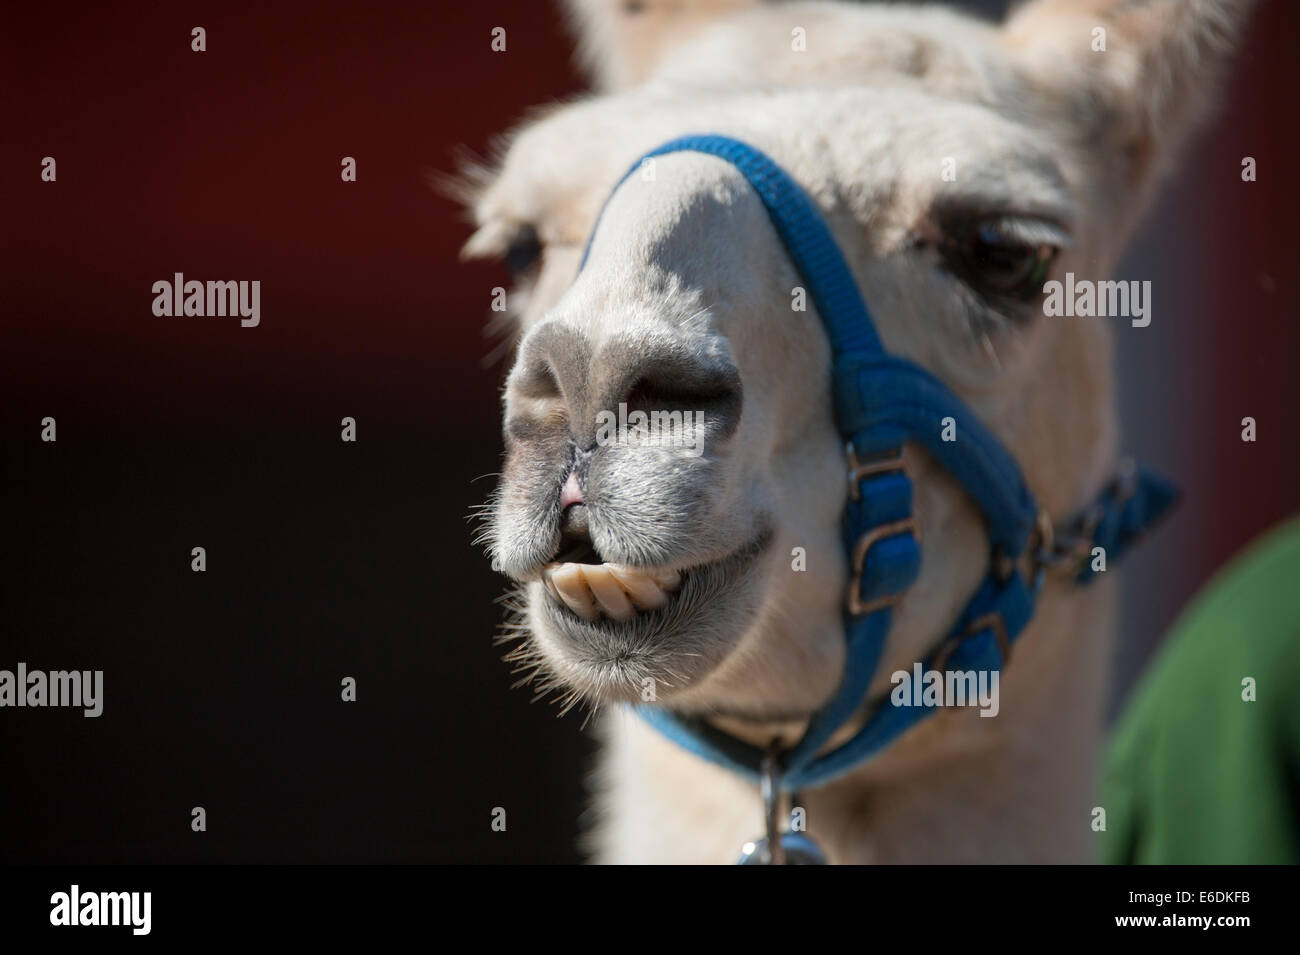 London Zoo, London UK. Thursday 21st August 2014. A Llama at London Zoo's annual weigh-in 2014. As well as being - Stock Image